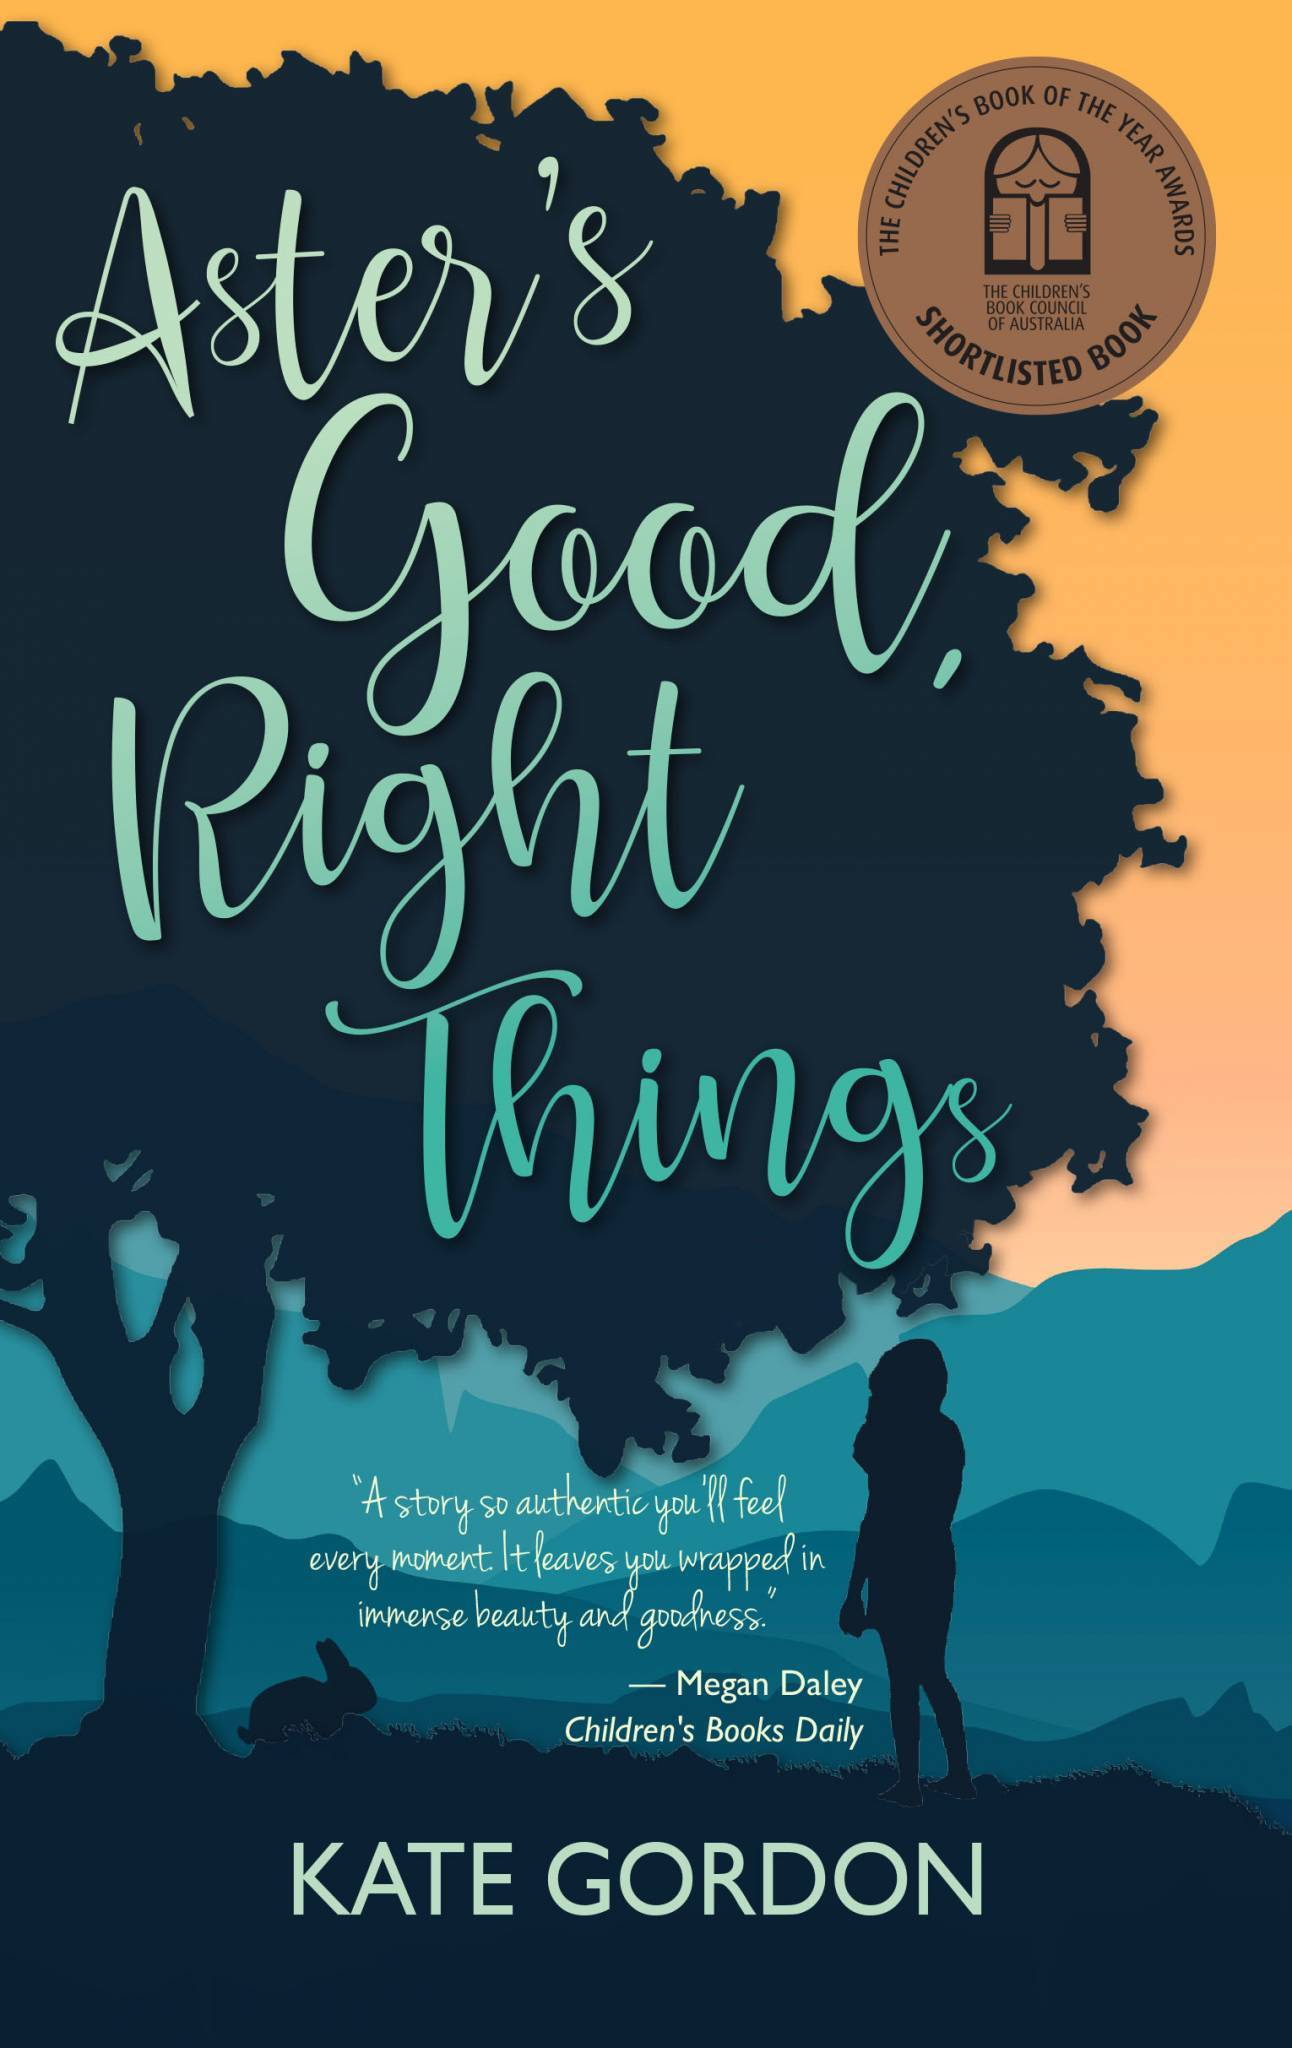 Book Cover for children's book Aster's Good, Right Things. The title is written in cursive writing in green through the centre of the page. The background is a silhouette of a large tree with a girl and a rabbit standing underneath it. There is an orange sky and hills behind the silhouette